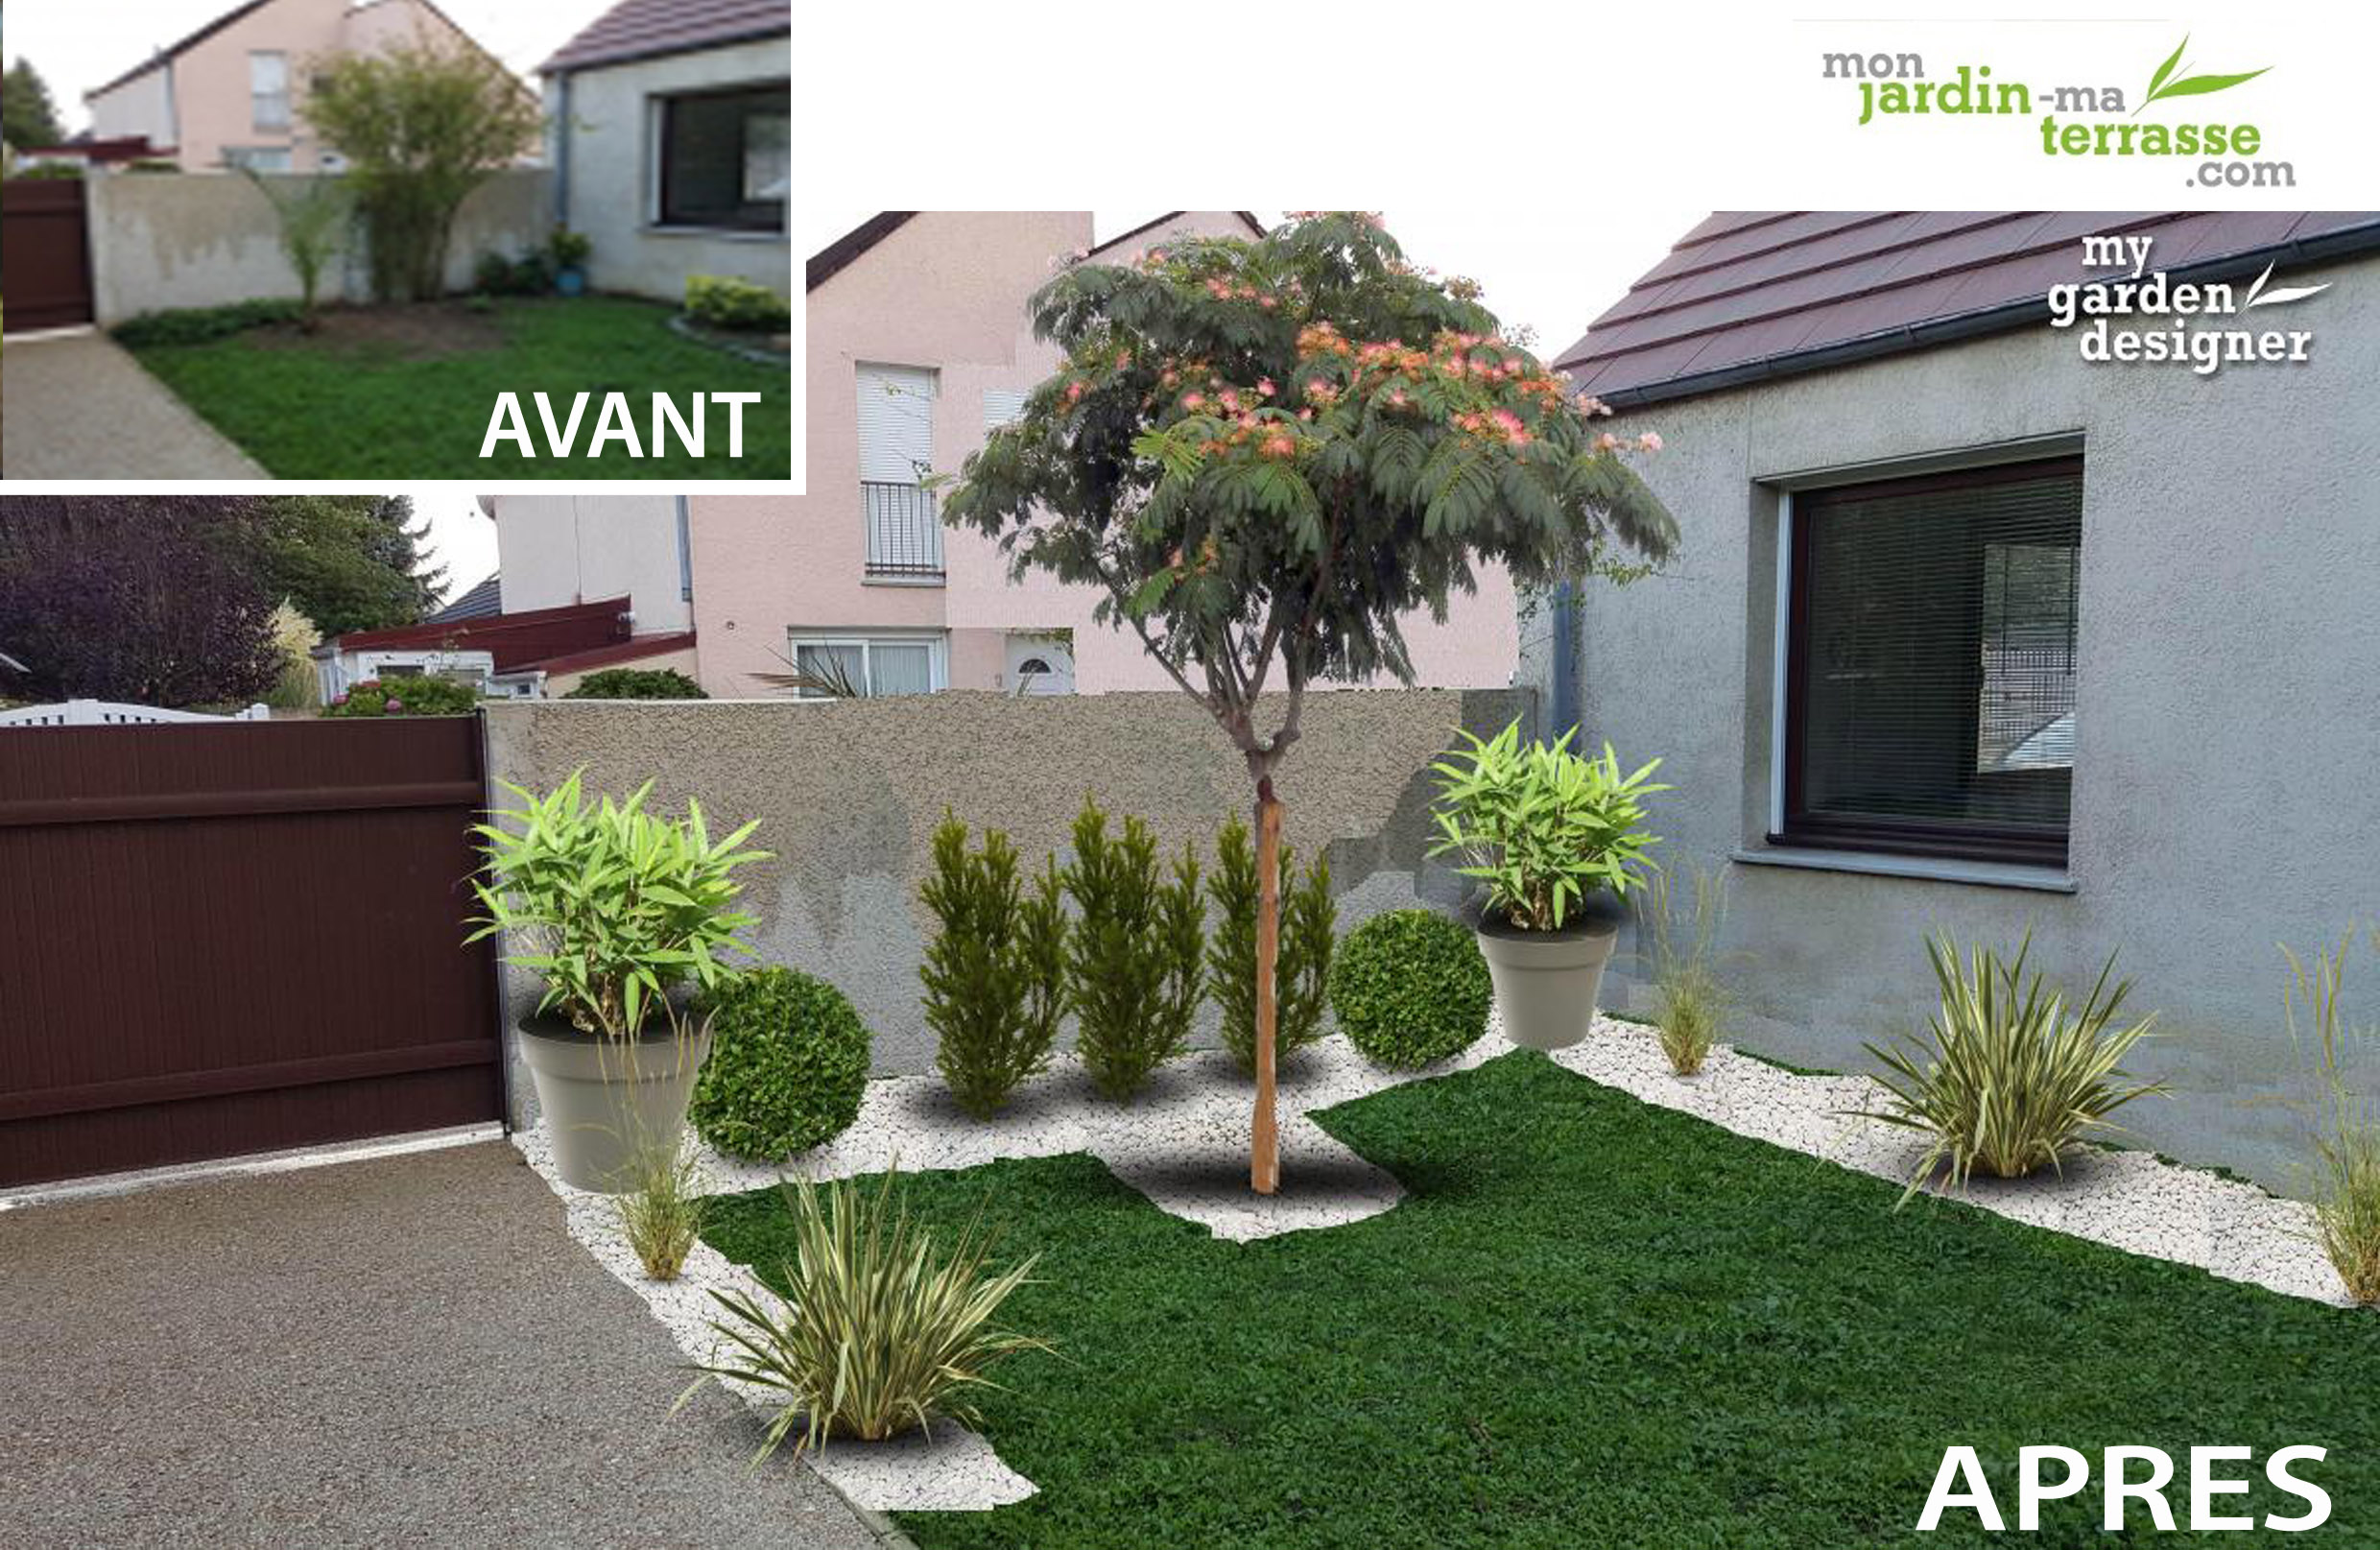 amenager un petit jardin de 30m2 monjardin materrassecom With amenagement de petit jardin